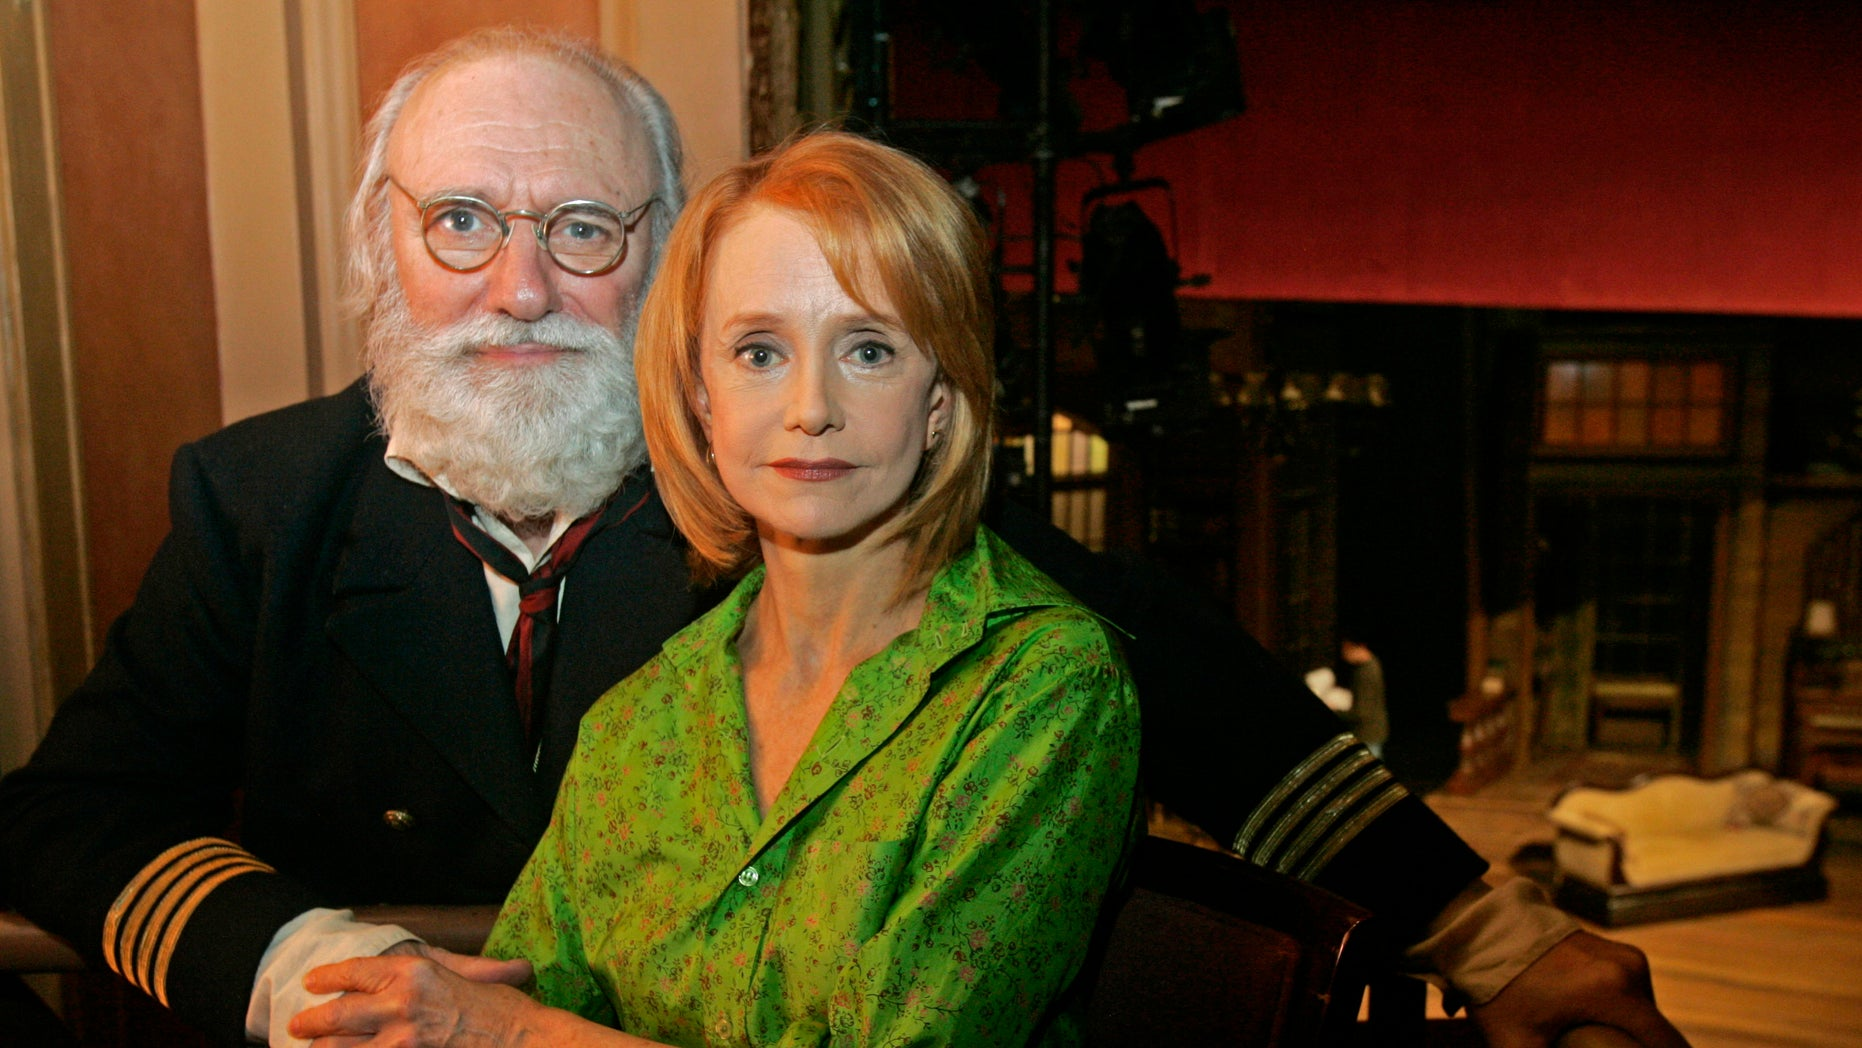 """In this Oct. 6, 2006 file photo, actors Philip Bosco and Swoosie Kurtz, who are appearing in George Bernard Shaw's """"Heartbreak House,"""" pose at the American Airlines Theatre in New York. Bosco, the Tony Award-winning actor known for his roles in films """"Working Girl"""" and """"The Savages,"""" has died age 88."""